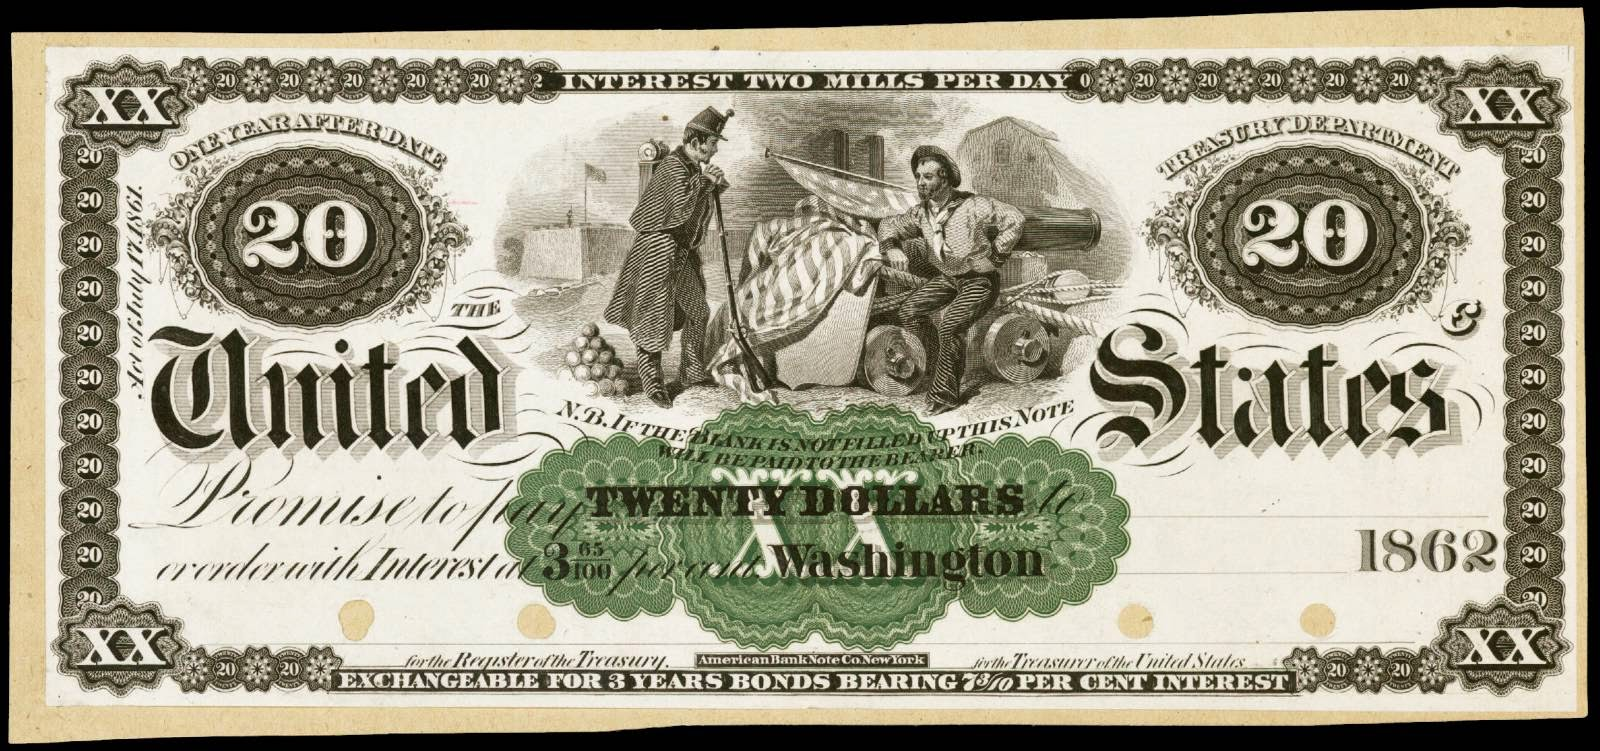 1861 $20 Dollar bill, One Year Interest Bearing Note